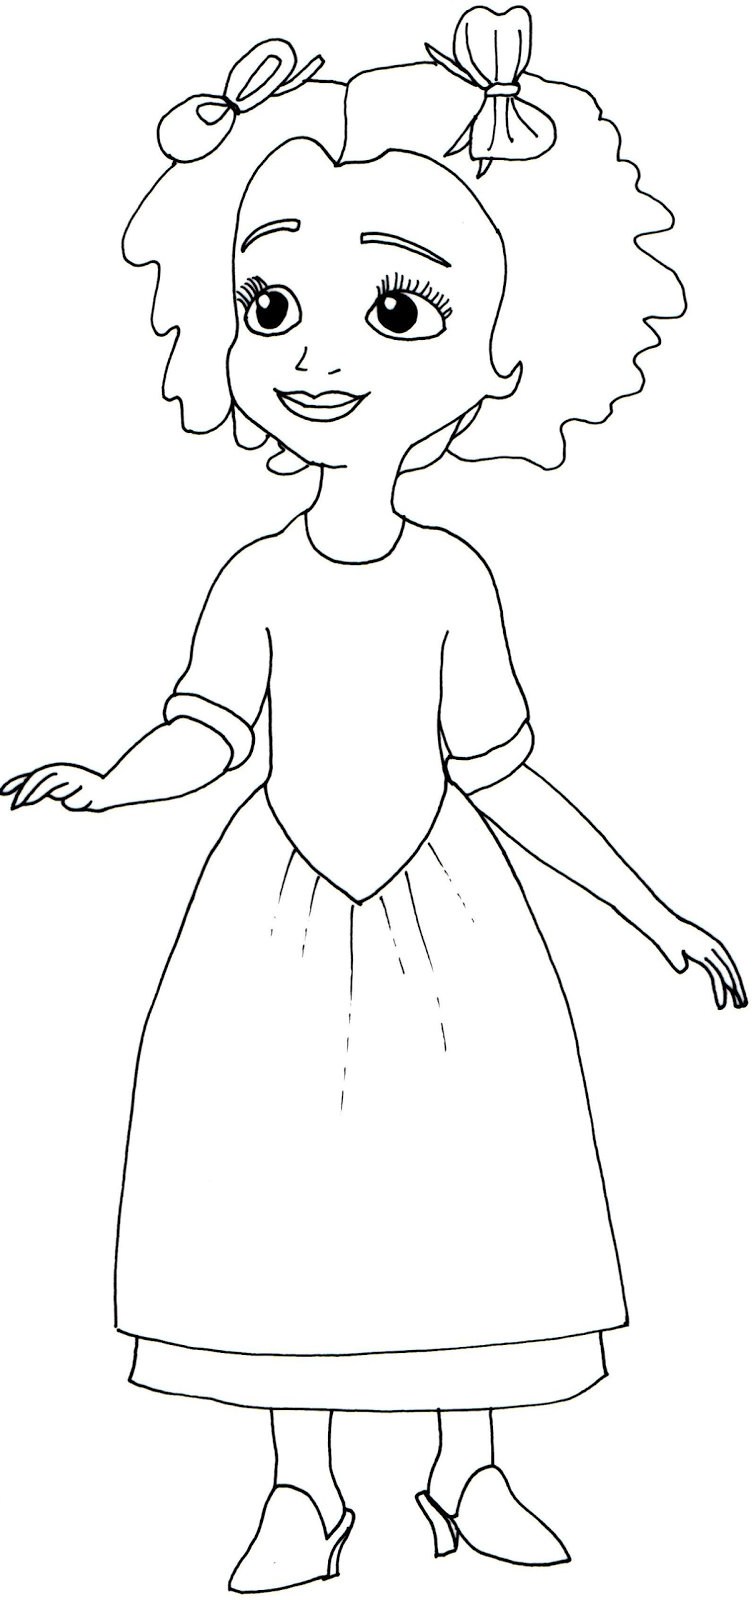 Sofia The First Coloring Pages Ruby Sofia the First Coloring Page